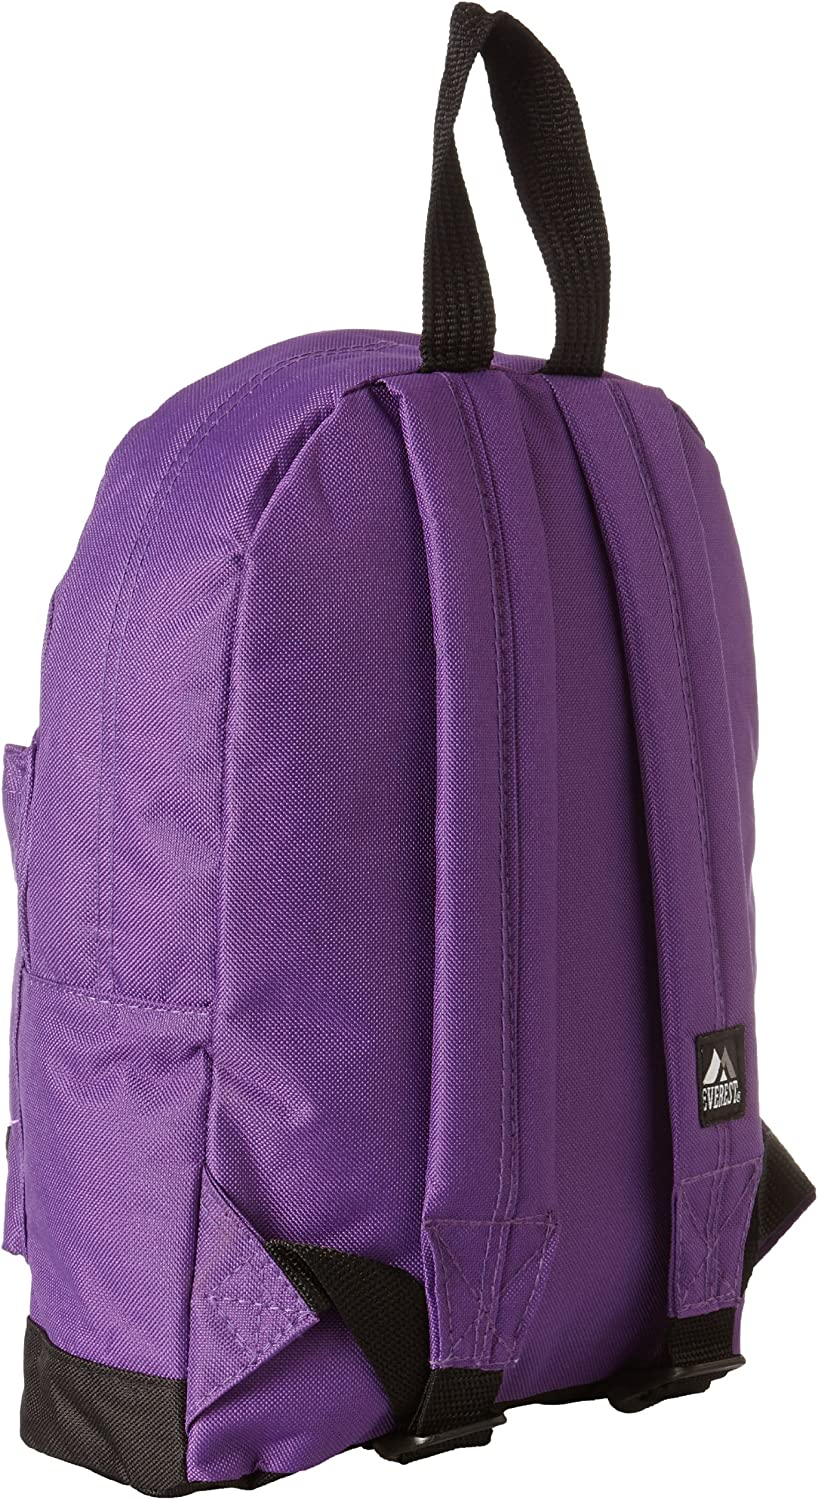 Perfect for Kids MONTOJ Dark Purple Hollow Out Pear Kids Rucksack Ideal Backpack for Children